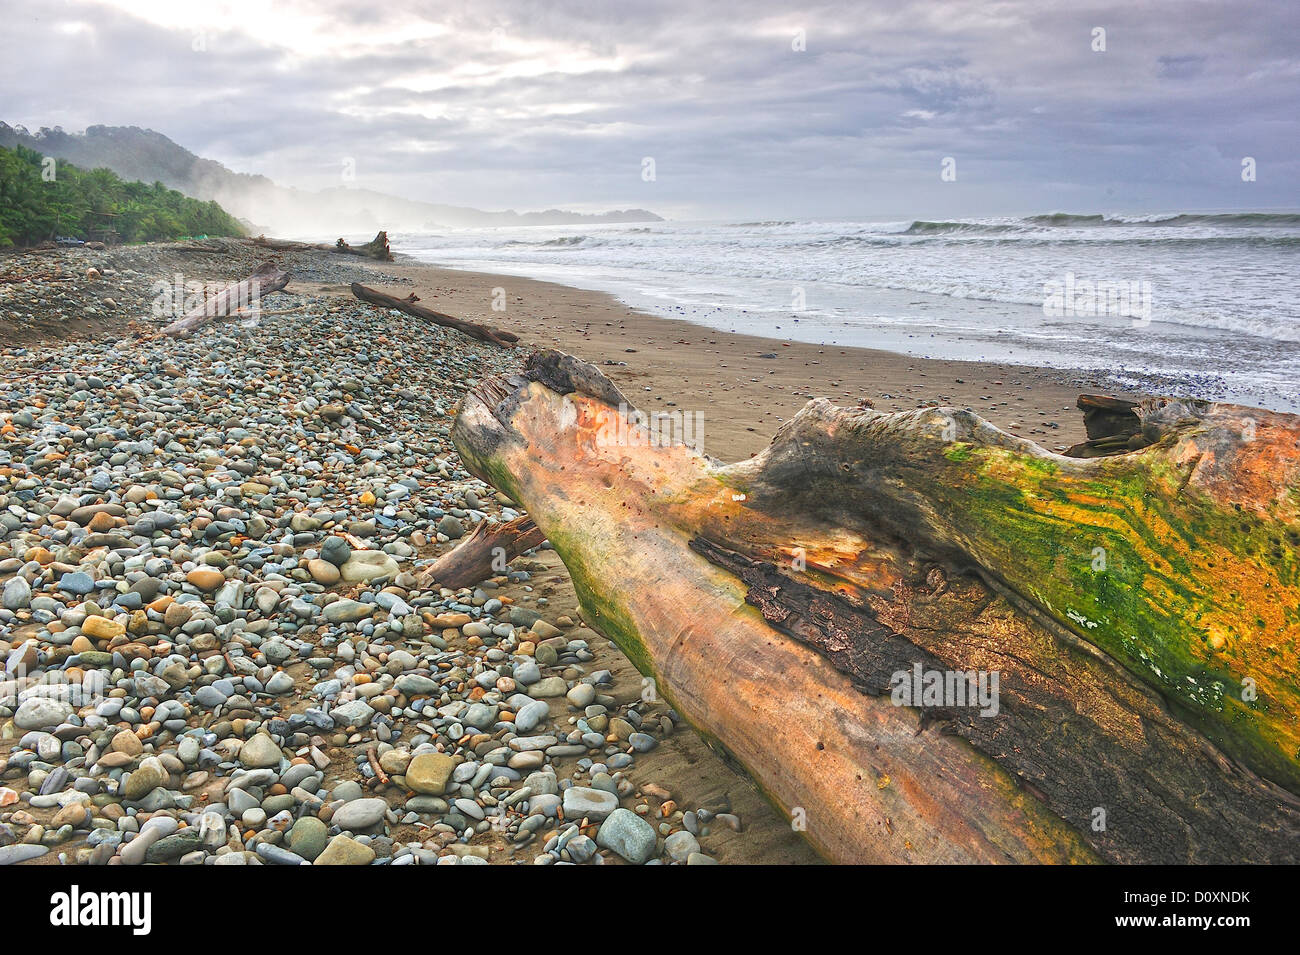 Central America, Costa Rica, pebble beach, pacific coast, rugged, surfing, driftwood - Stock Image